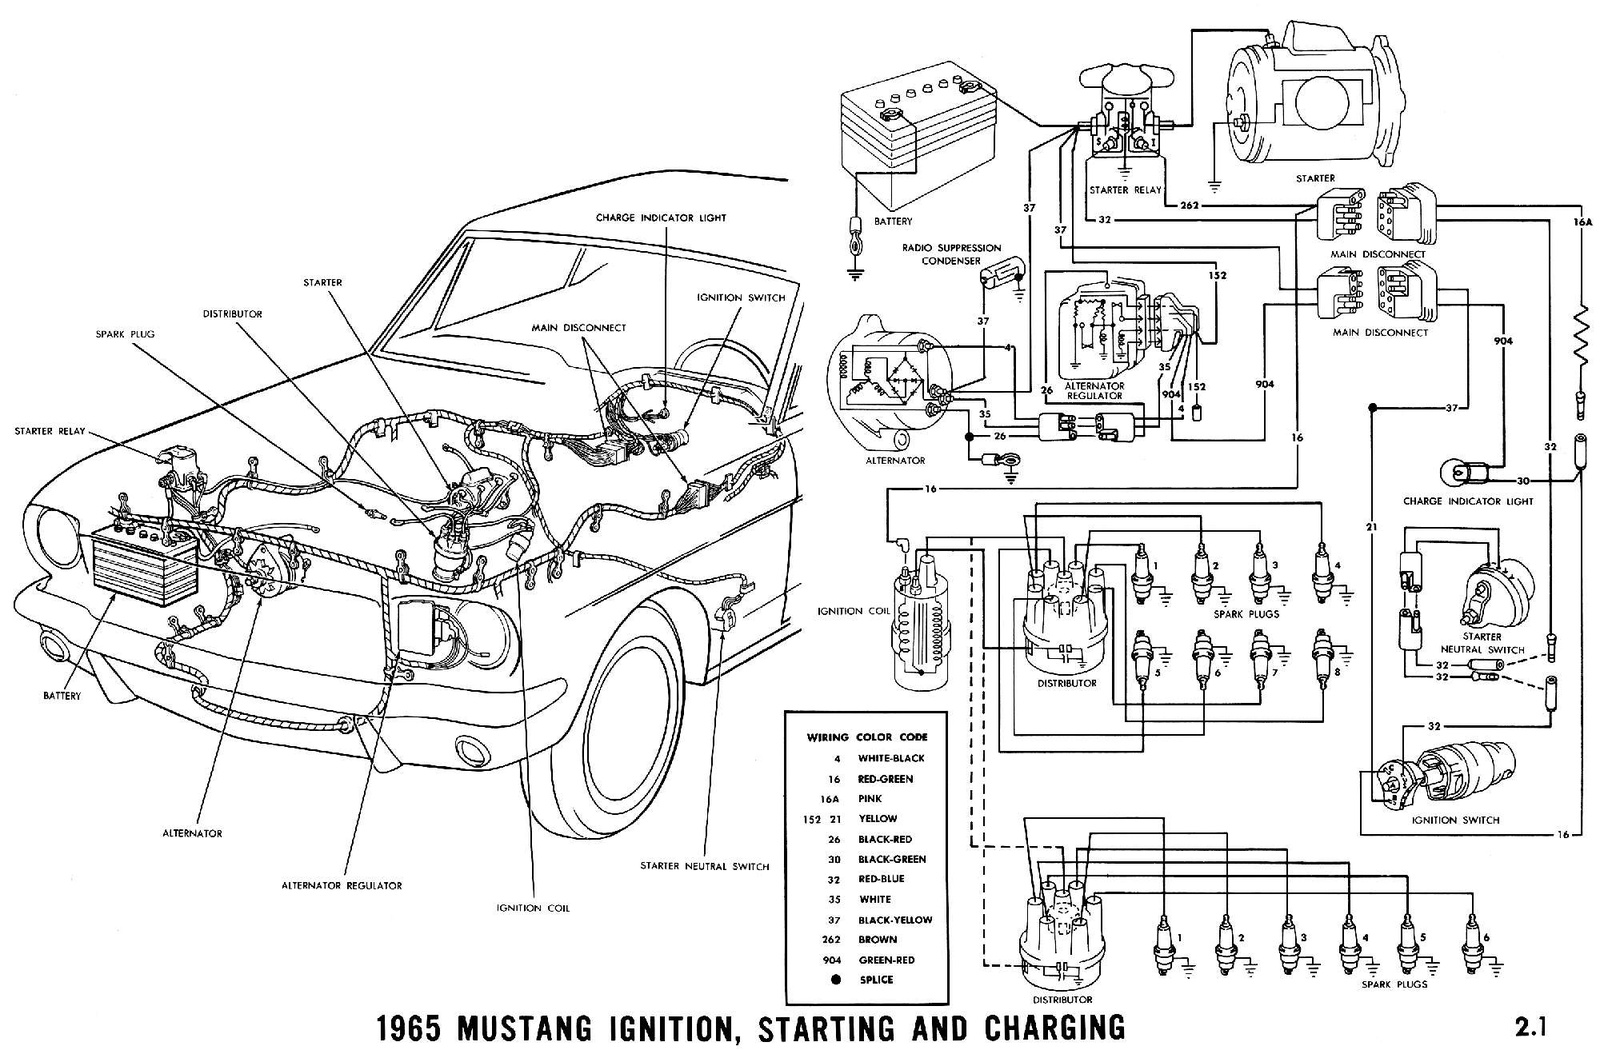 1965 mustang wiring diagram complete wiring diagrams u2022 rh sammich co 1965 Mustang Turn Signal Wiring Diagram 1965 mustang fastback wiring diagram